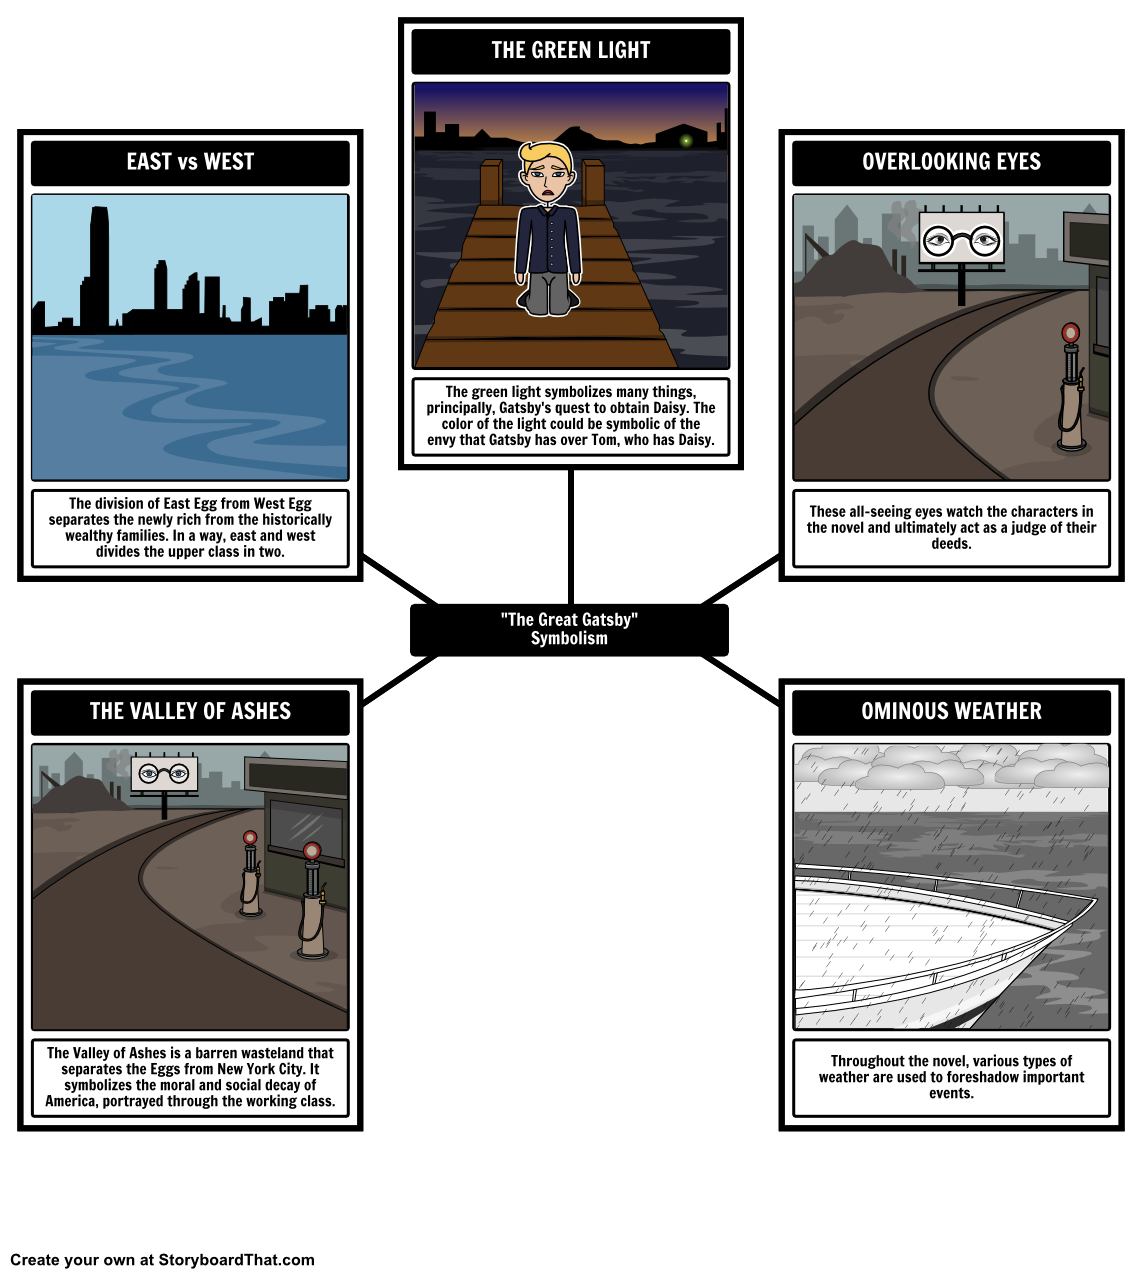 great gatsby symbolism essay the great gatsby symbolism essay  here is our symbolism storyboard for the great gatsby made using here is our symbolism storyboard